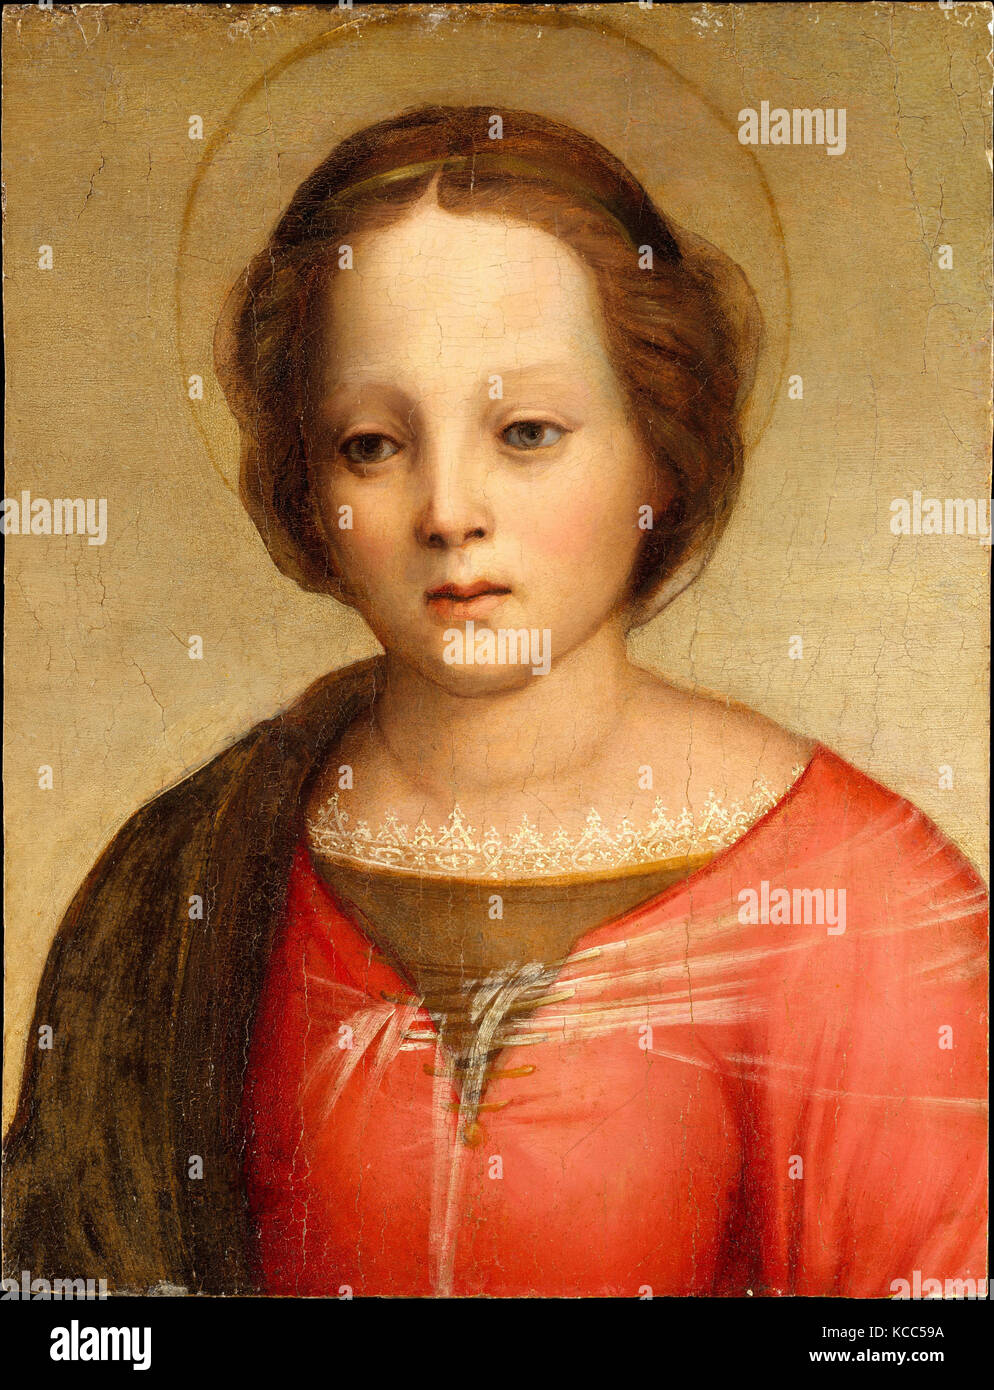 Head of the Madonna, ca. 1509, Oil on wood, 15 x 11 1/2 in. (38.1 x 29.2 cm), Paintings, Franciabigio (Francesco Stock Photo